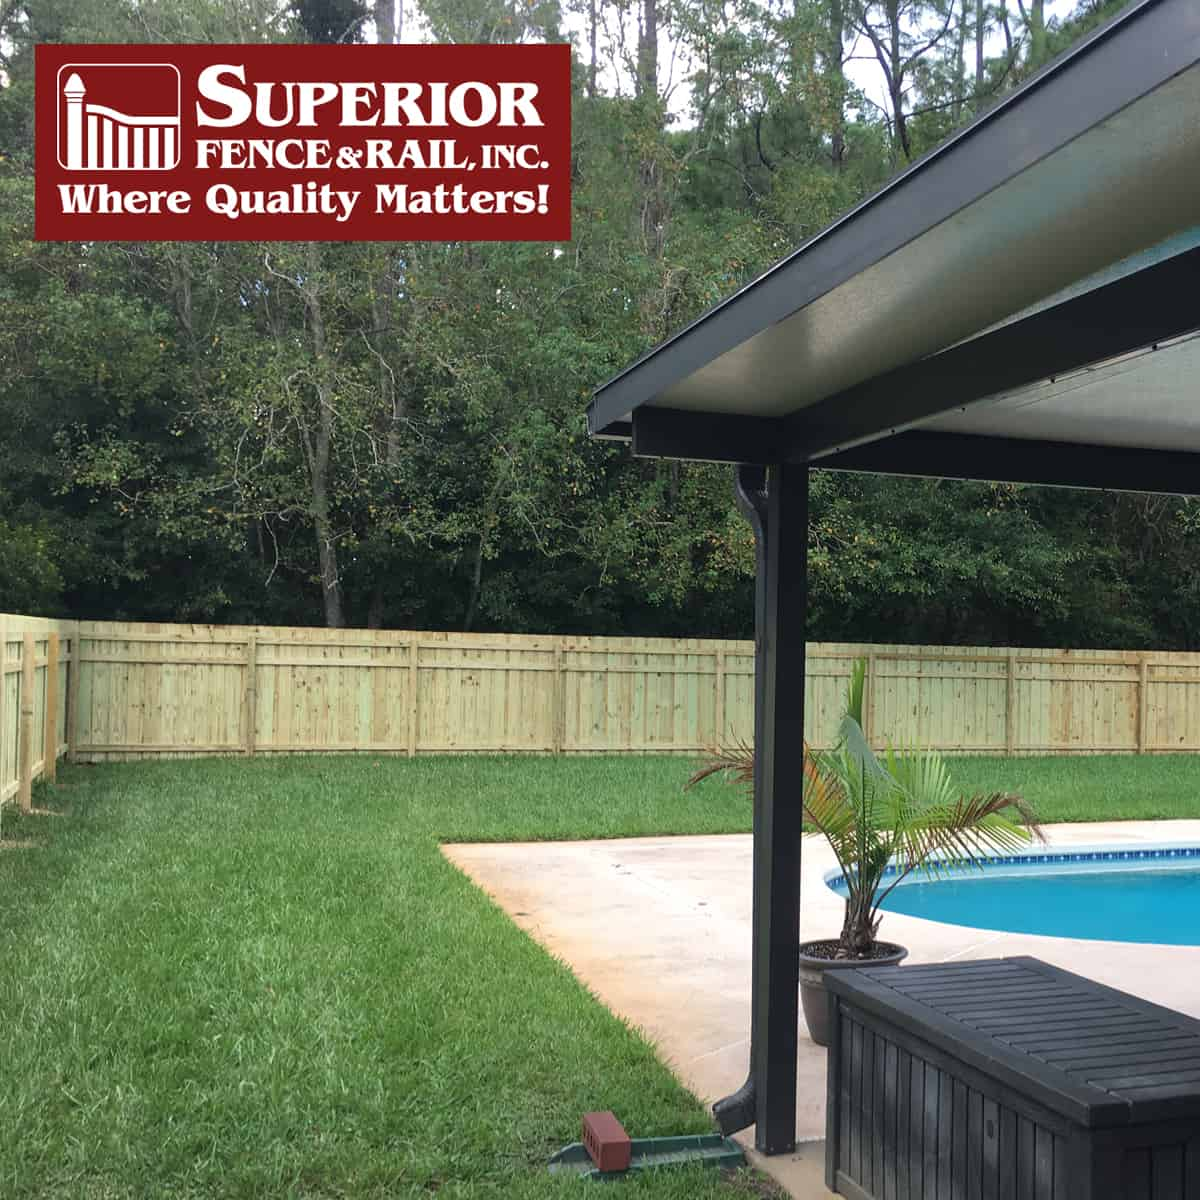 https://www.superiorfenceandrail.com/wp-content/uploads/2020/03/Orlando-fence-options-wood-privacy-fence-with-pool.jpg